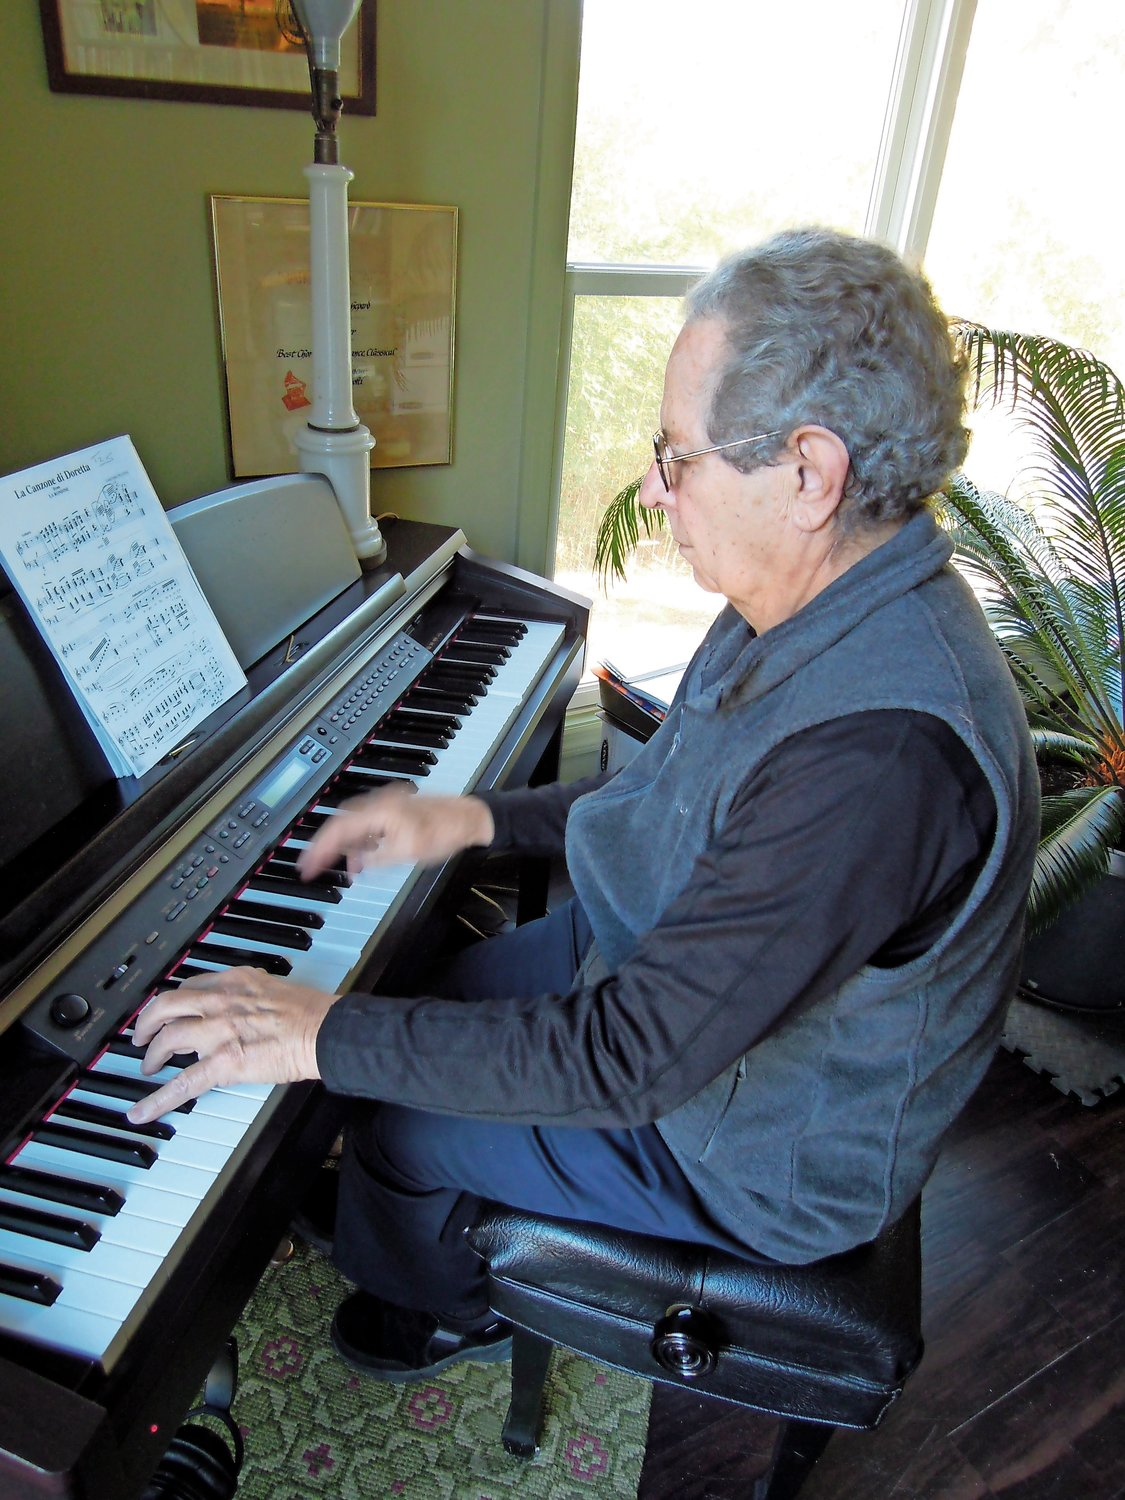 Shepard played Beethoven and reminsced about his 60-year career.